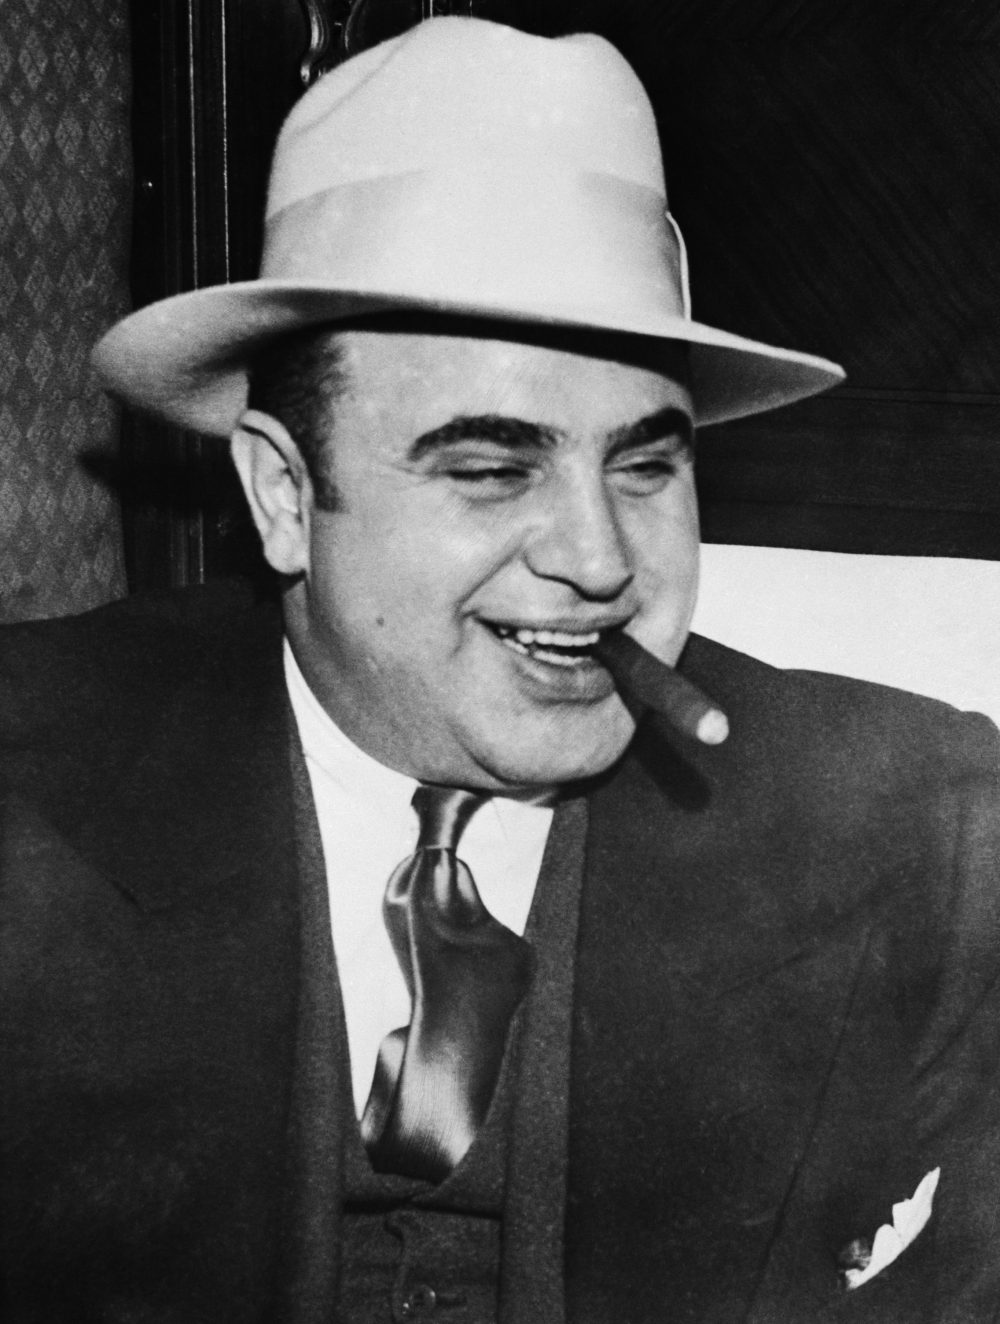 M: Capone: The Life and World of Al